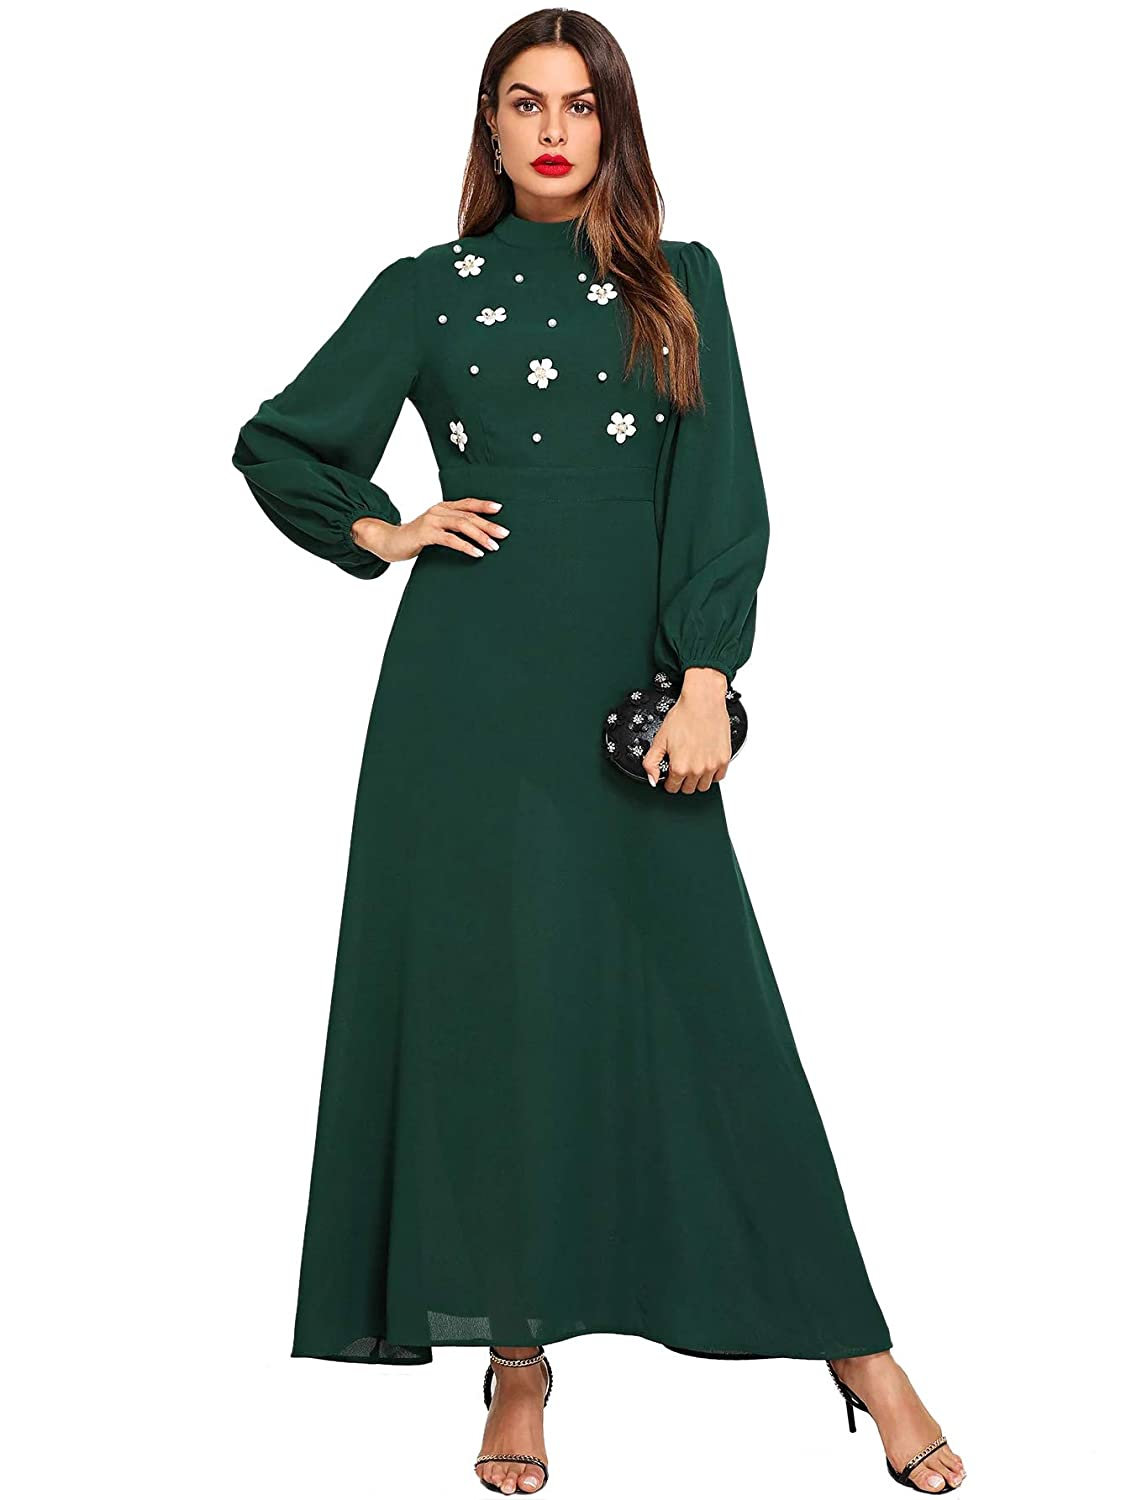 1960s Evening Dresses, Bridesmaids, Mothers Gowns Verdusa Womens Mock Neck Long Sleeve Floral Embroidery Belted Maxi Dress $36.99 AT vintagedancer.com